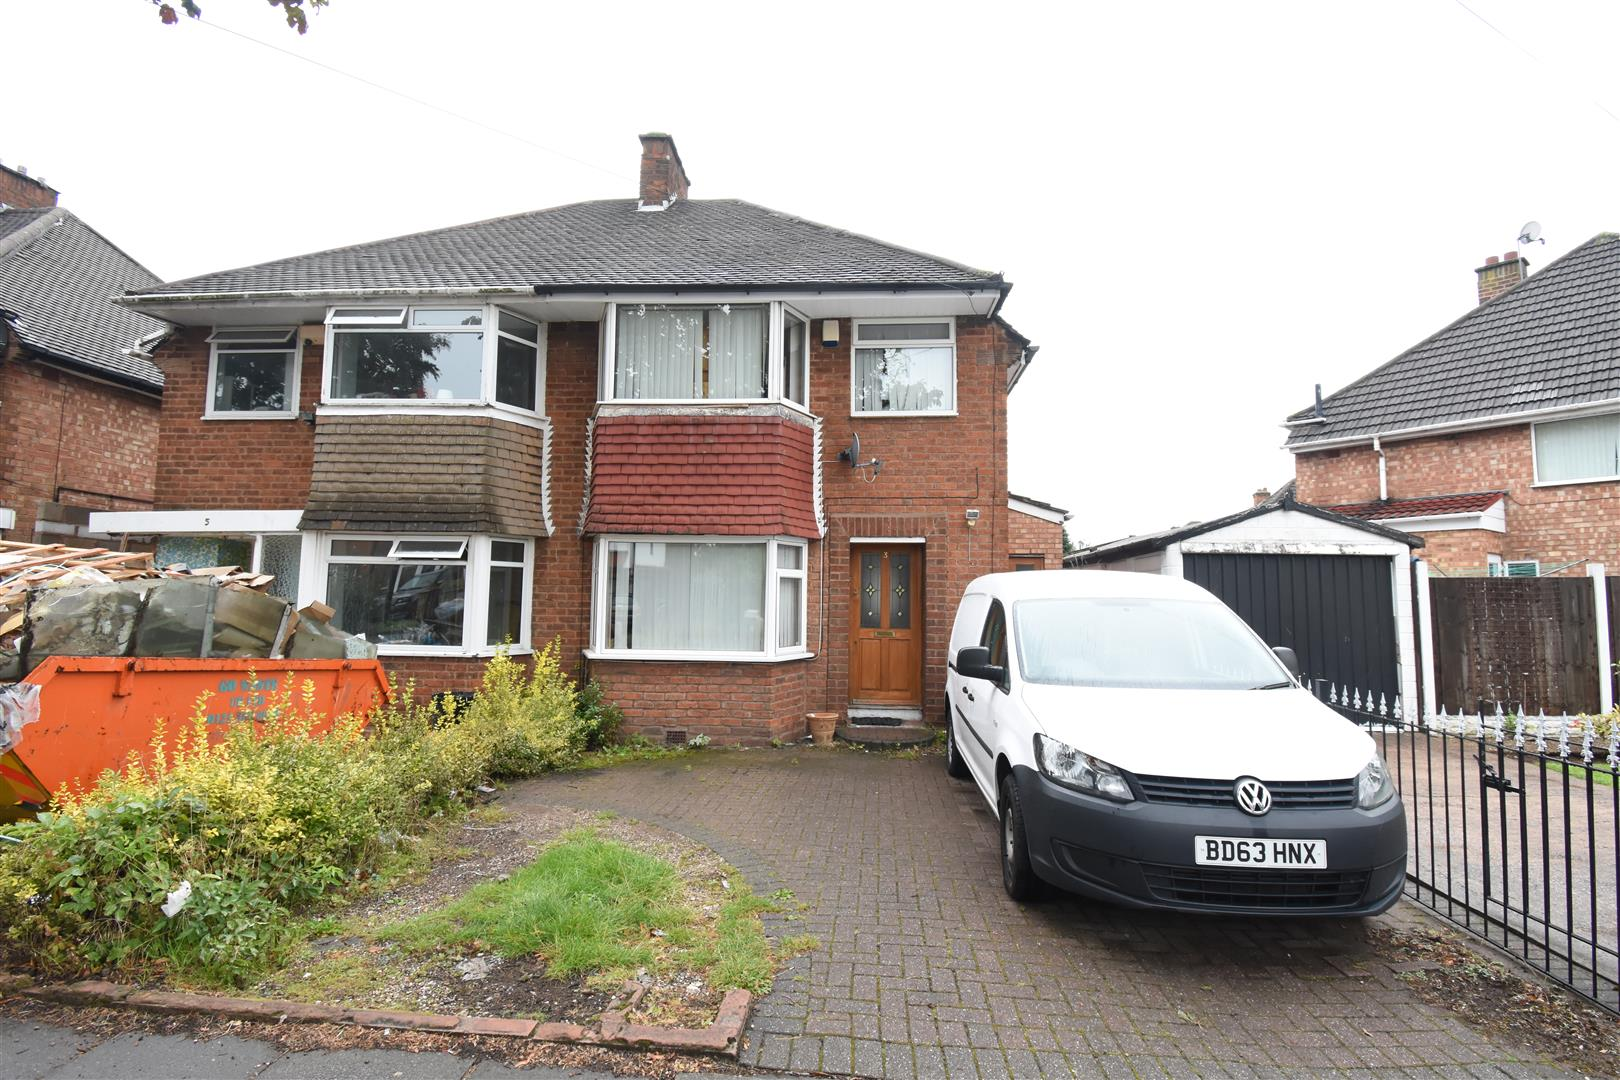 3 bed house for sale in Fowey Road, Birmingham, B34